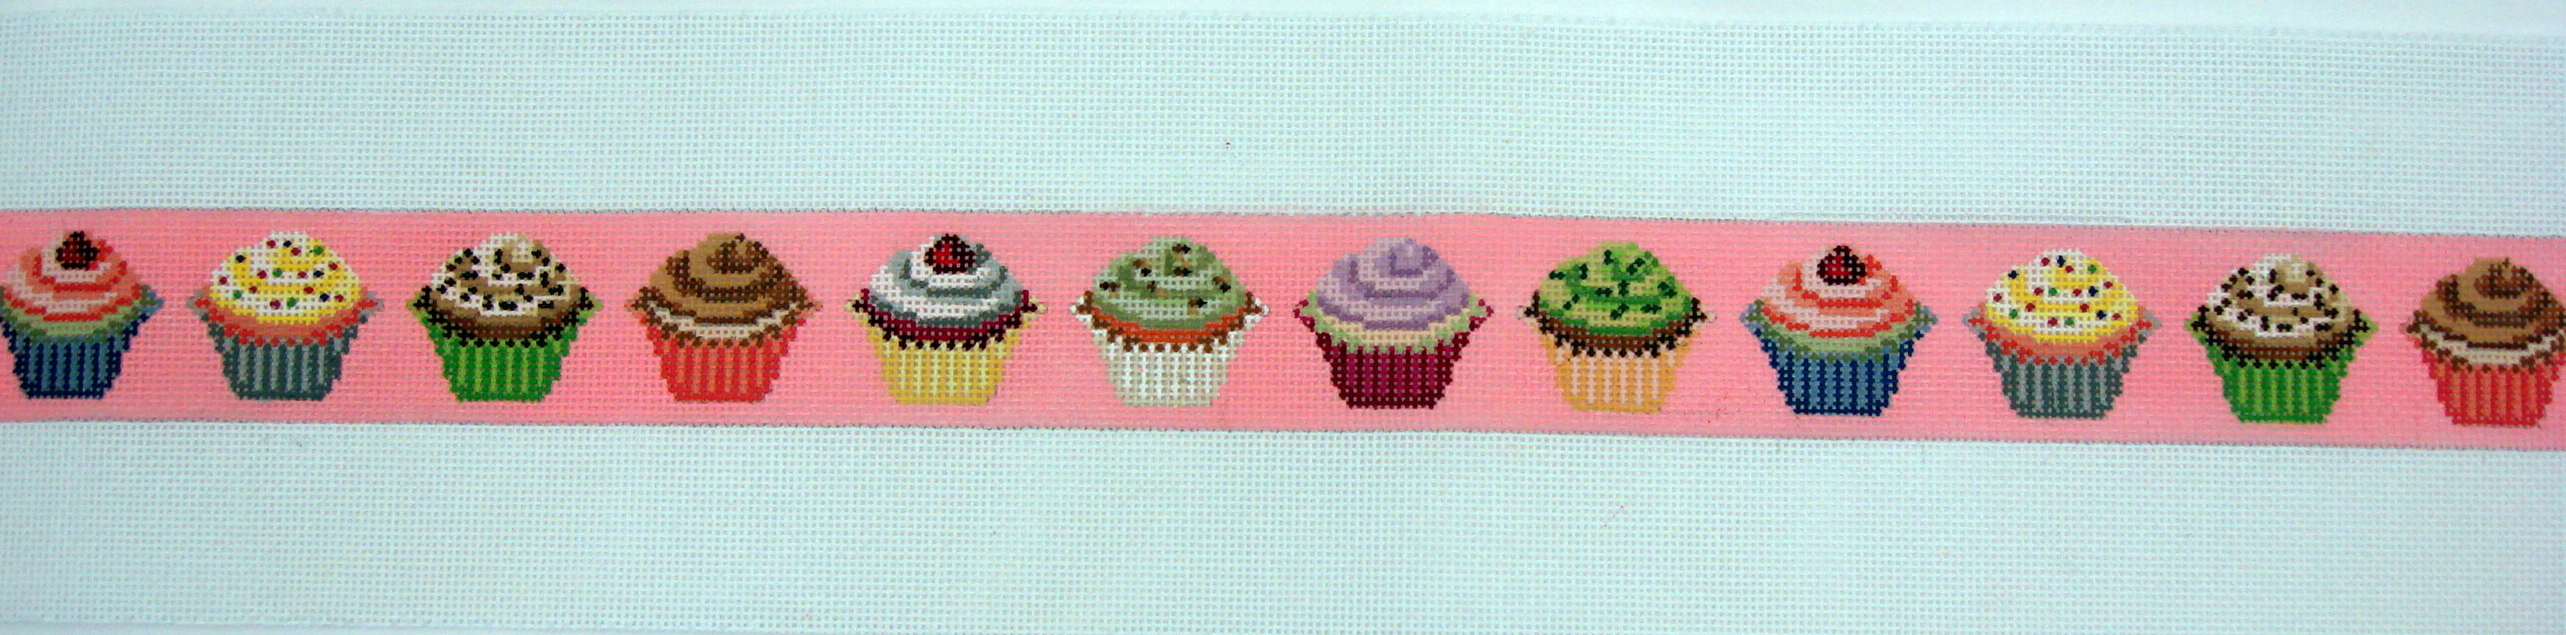 Cupcake Belt (Handpainted by Itz A Stitch) 18* 112744